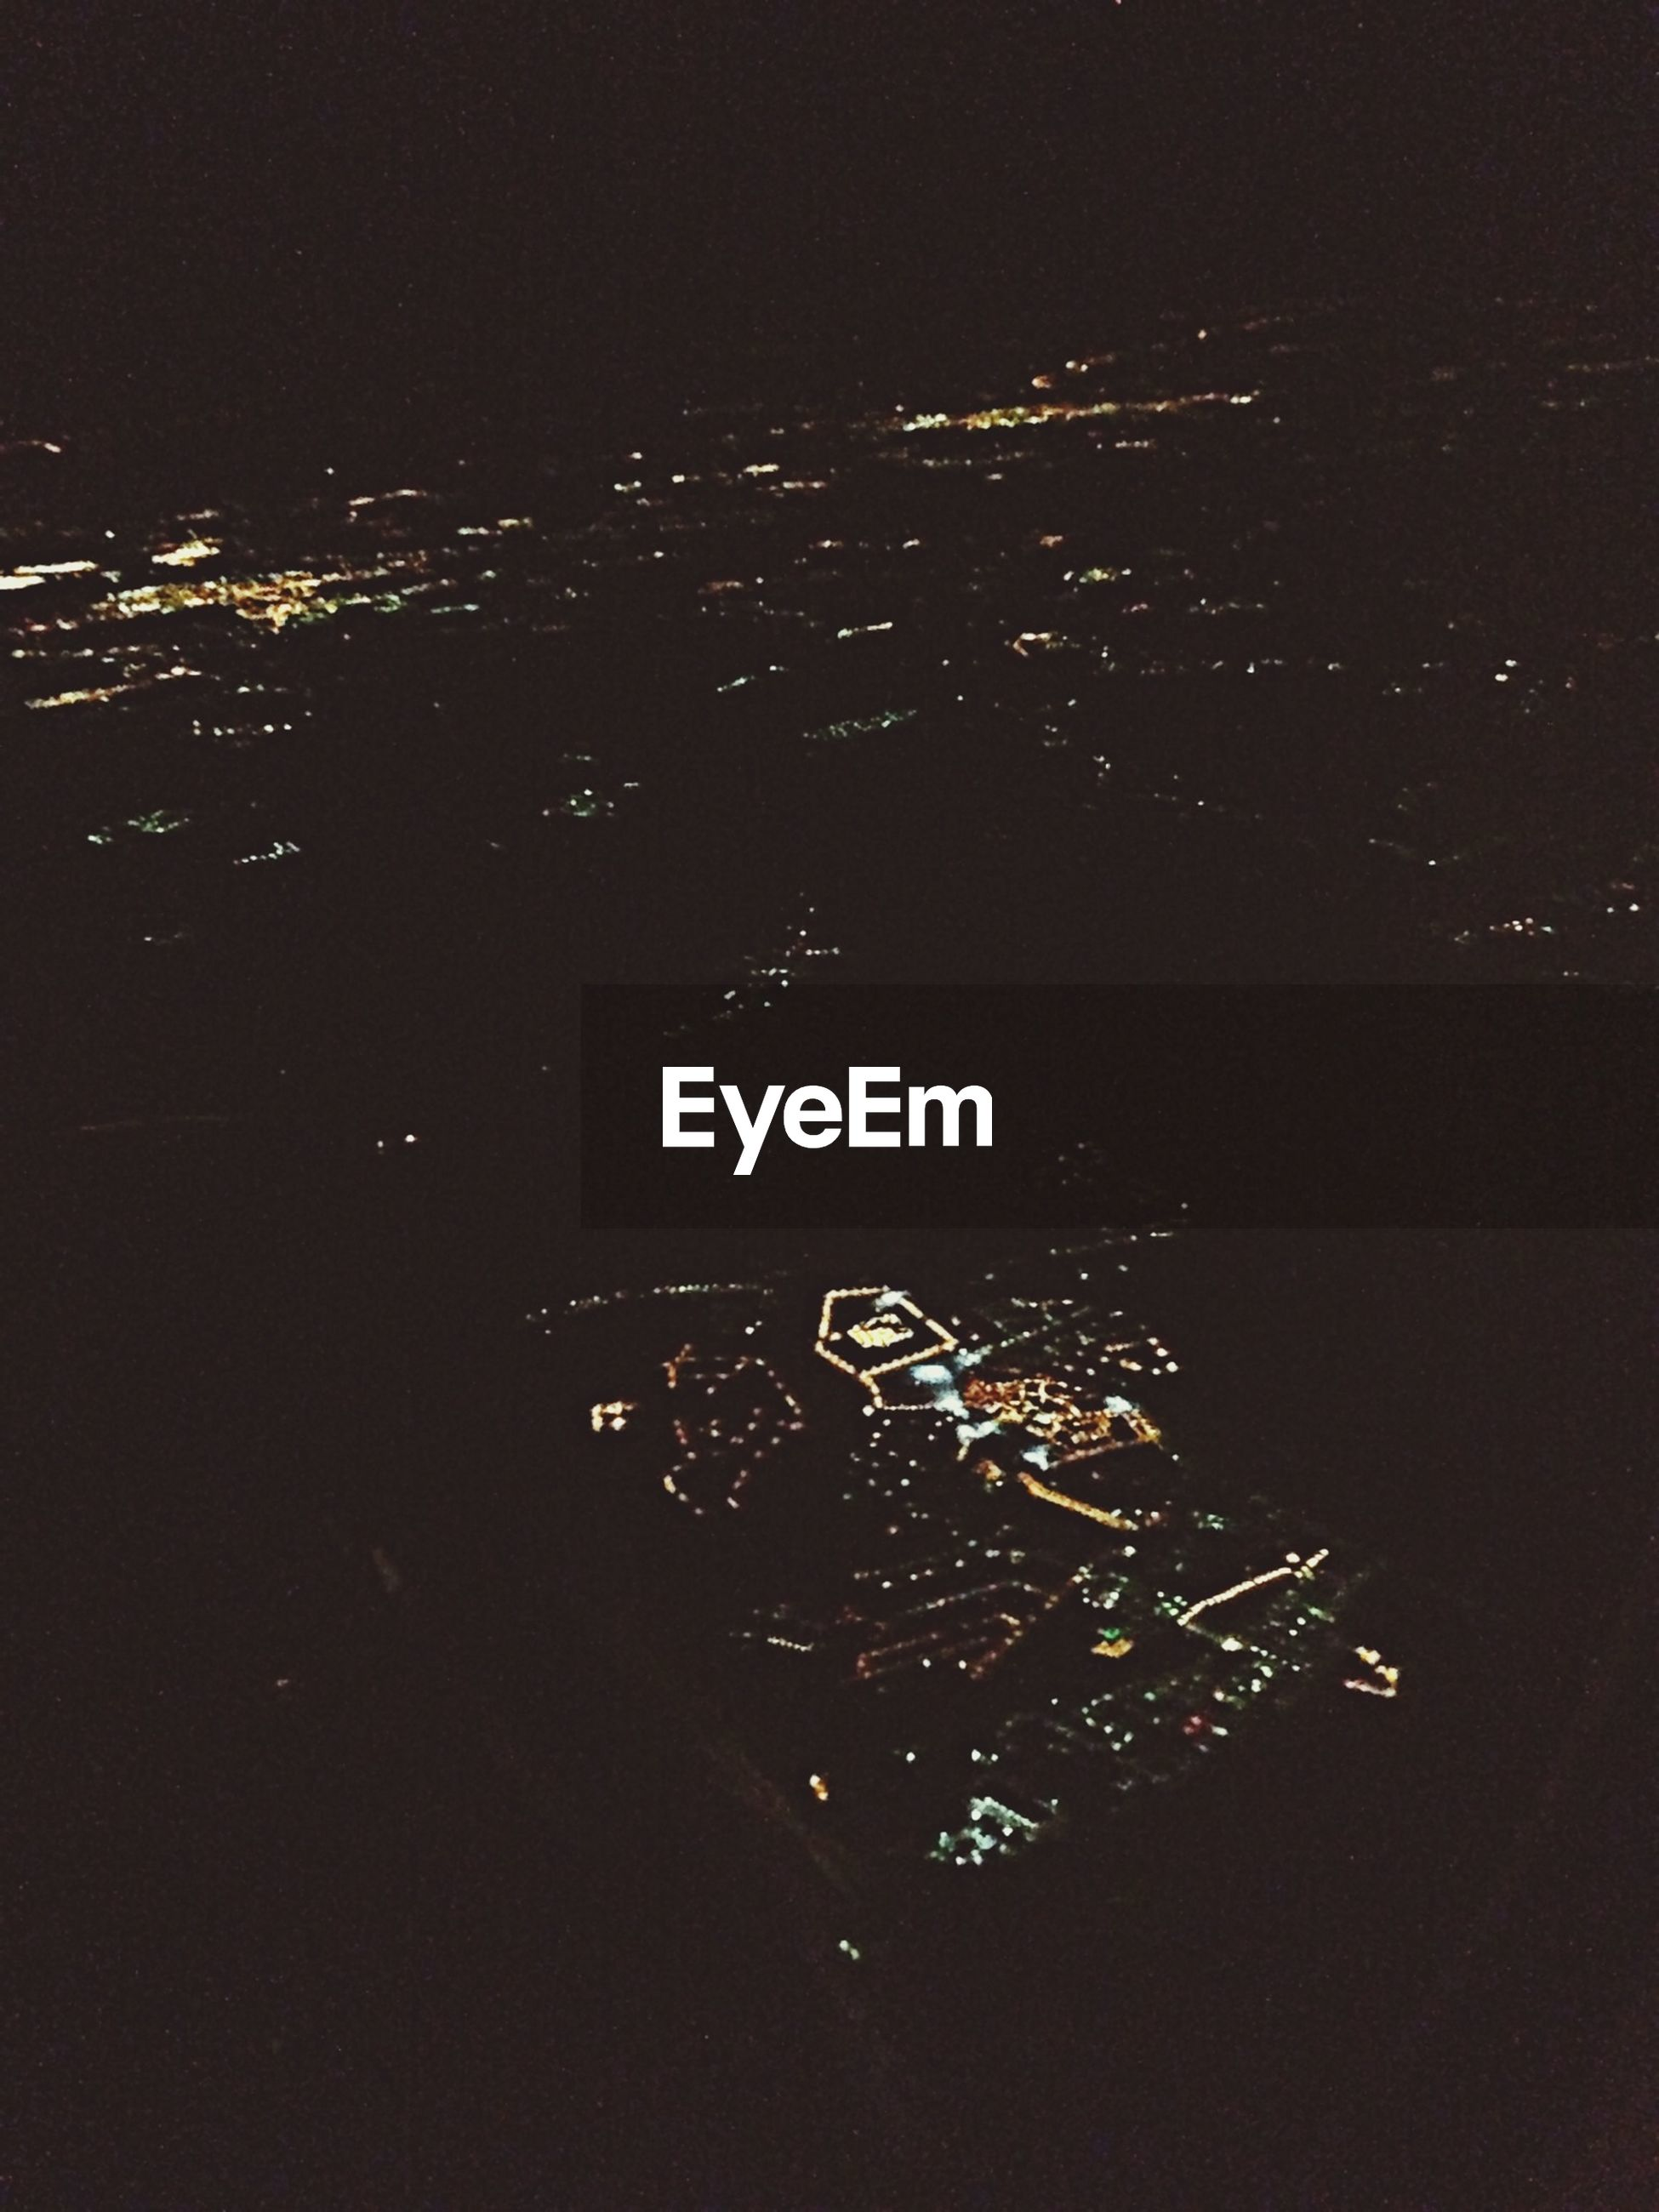 night, illuminated, communication, text, high angle view, western script, dark, indoors, technology, no people, city, cityscape, light - natural phenomenon, lighting equipment, electricity, building exterior, copy space, capital letter, built structure